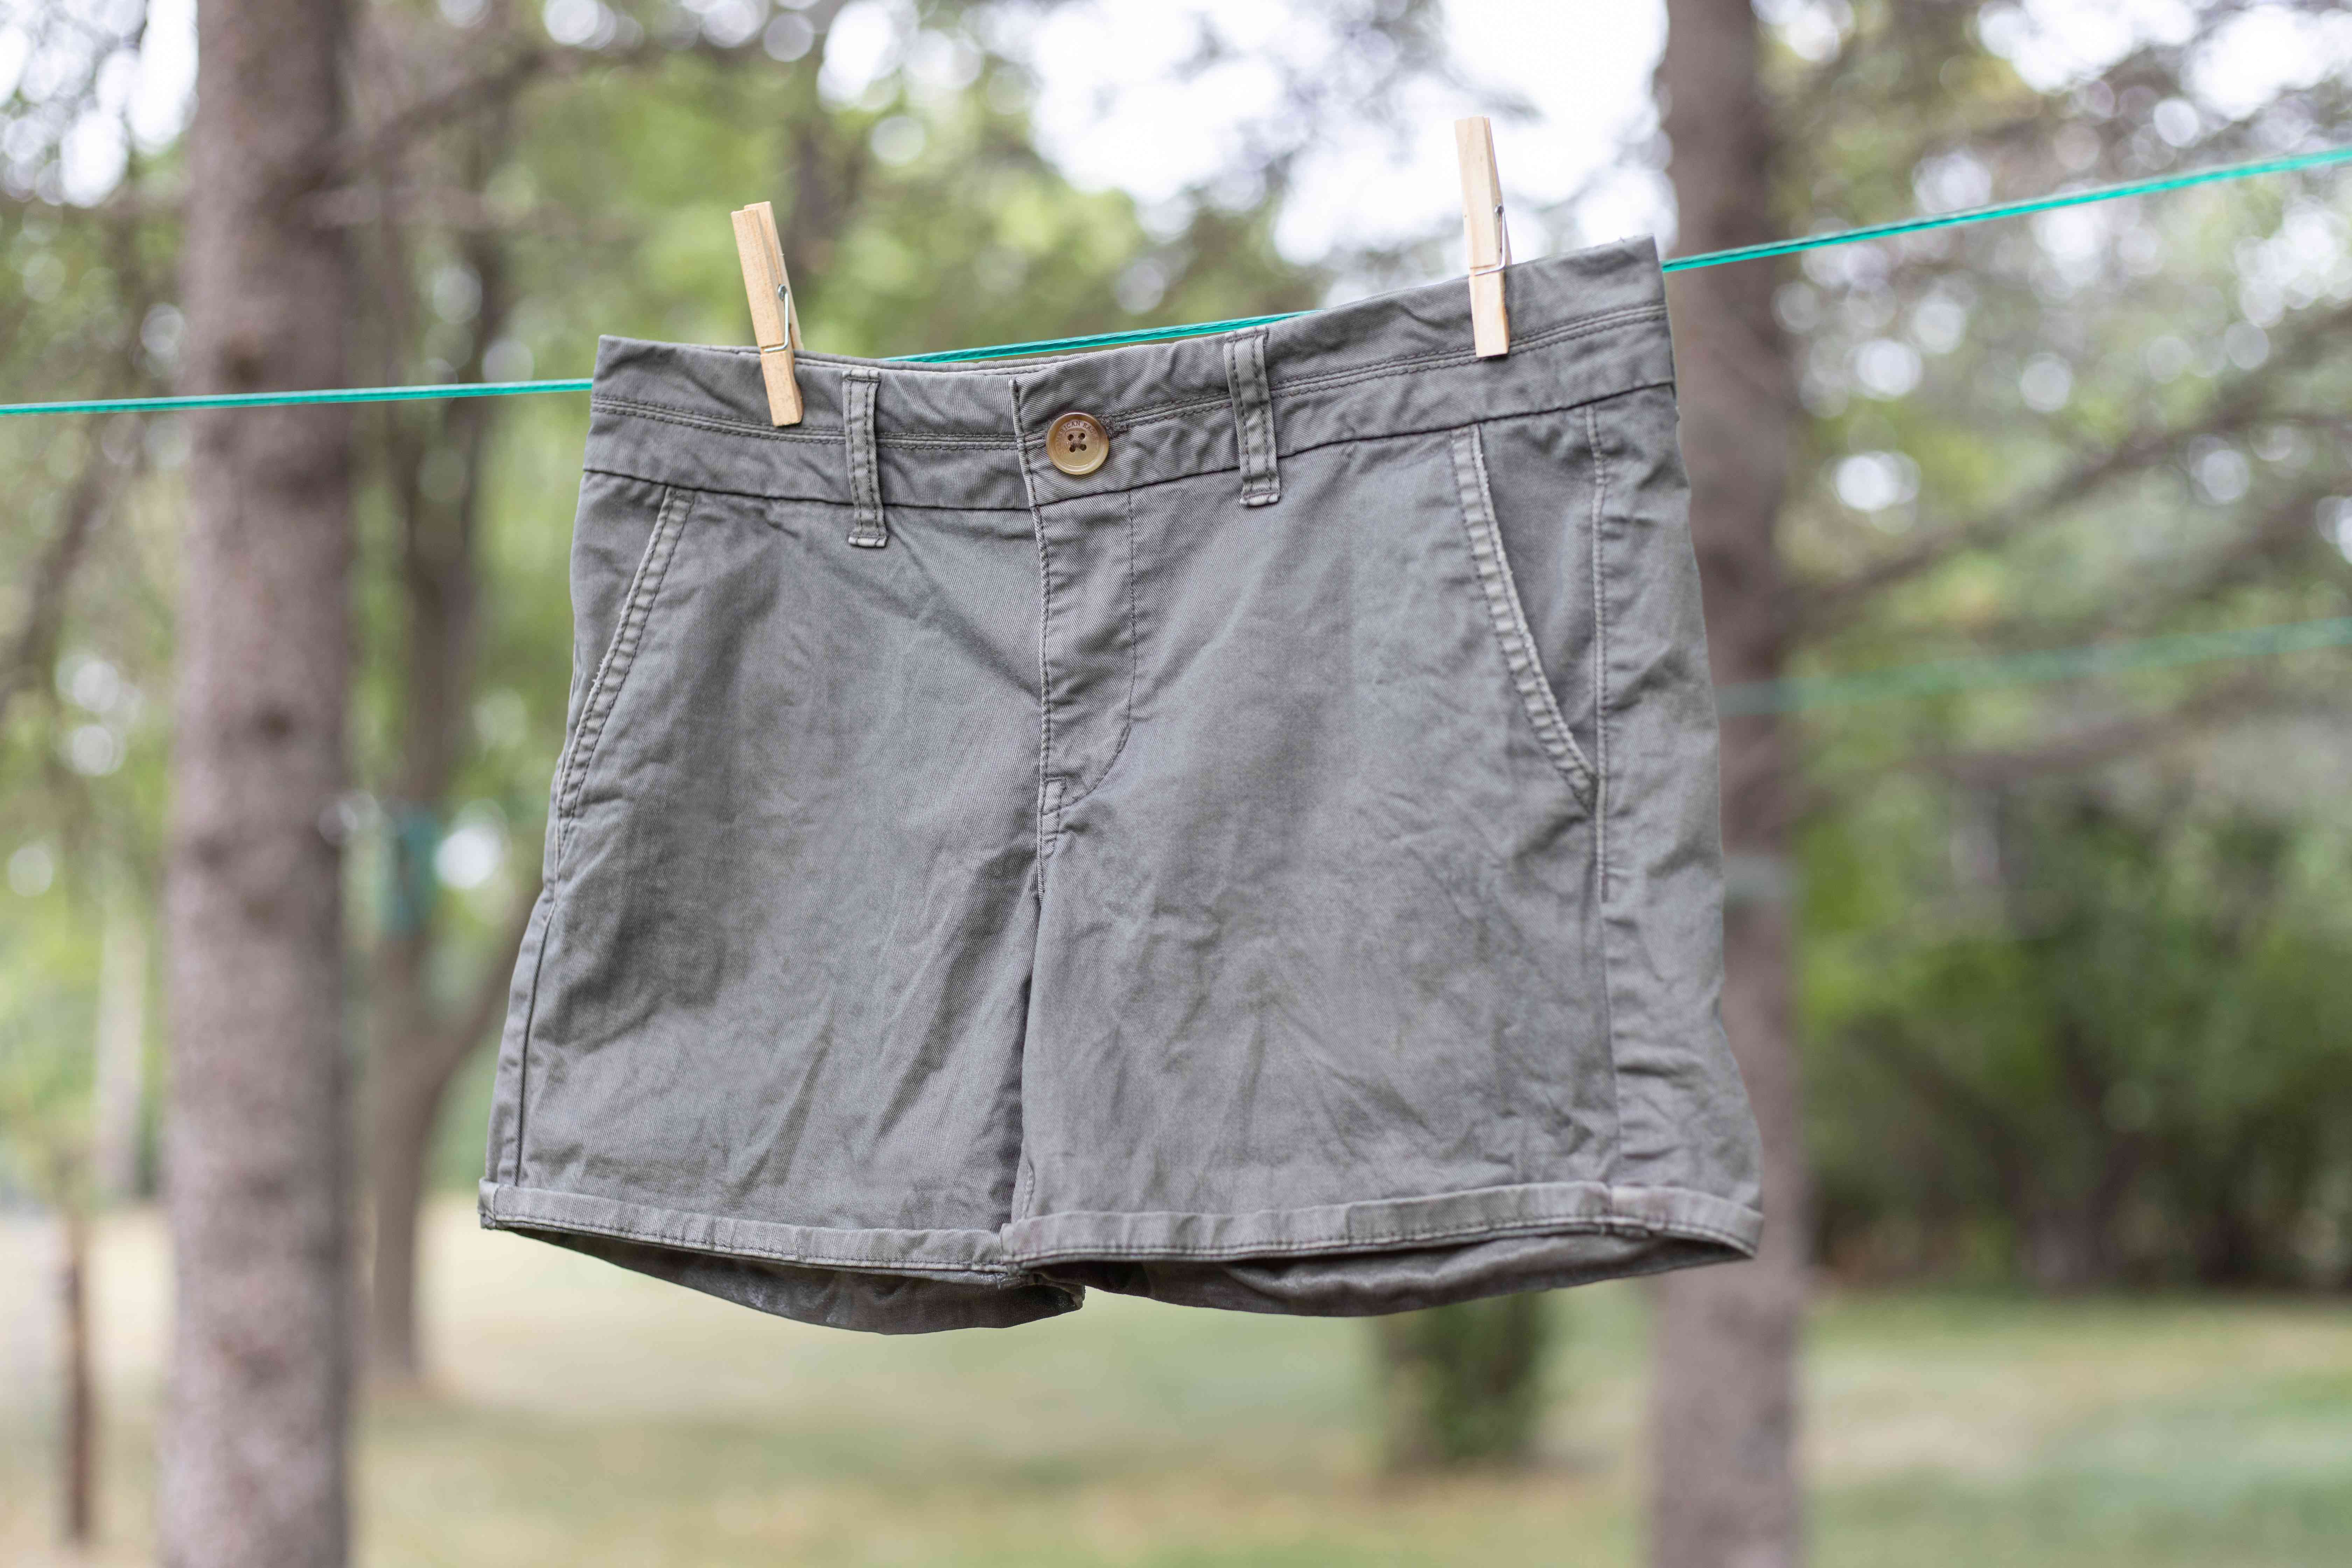 Cargo pants with skunk odor air drying on clothes line